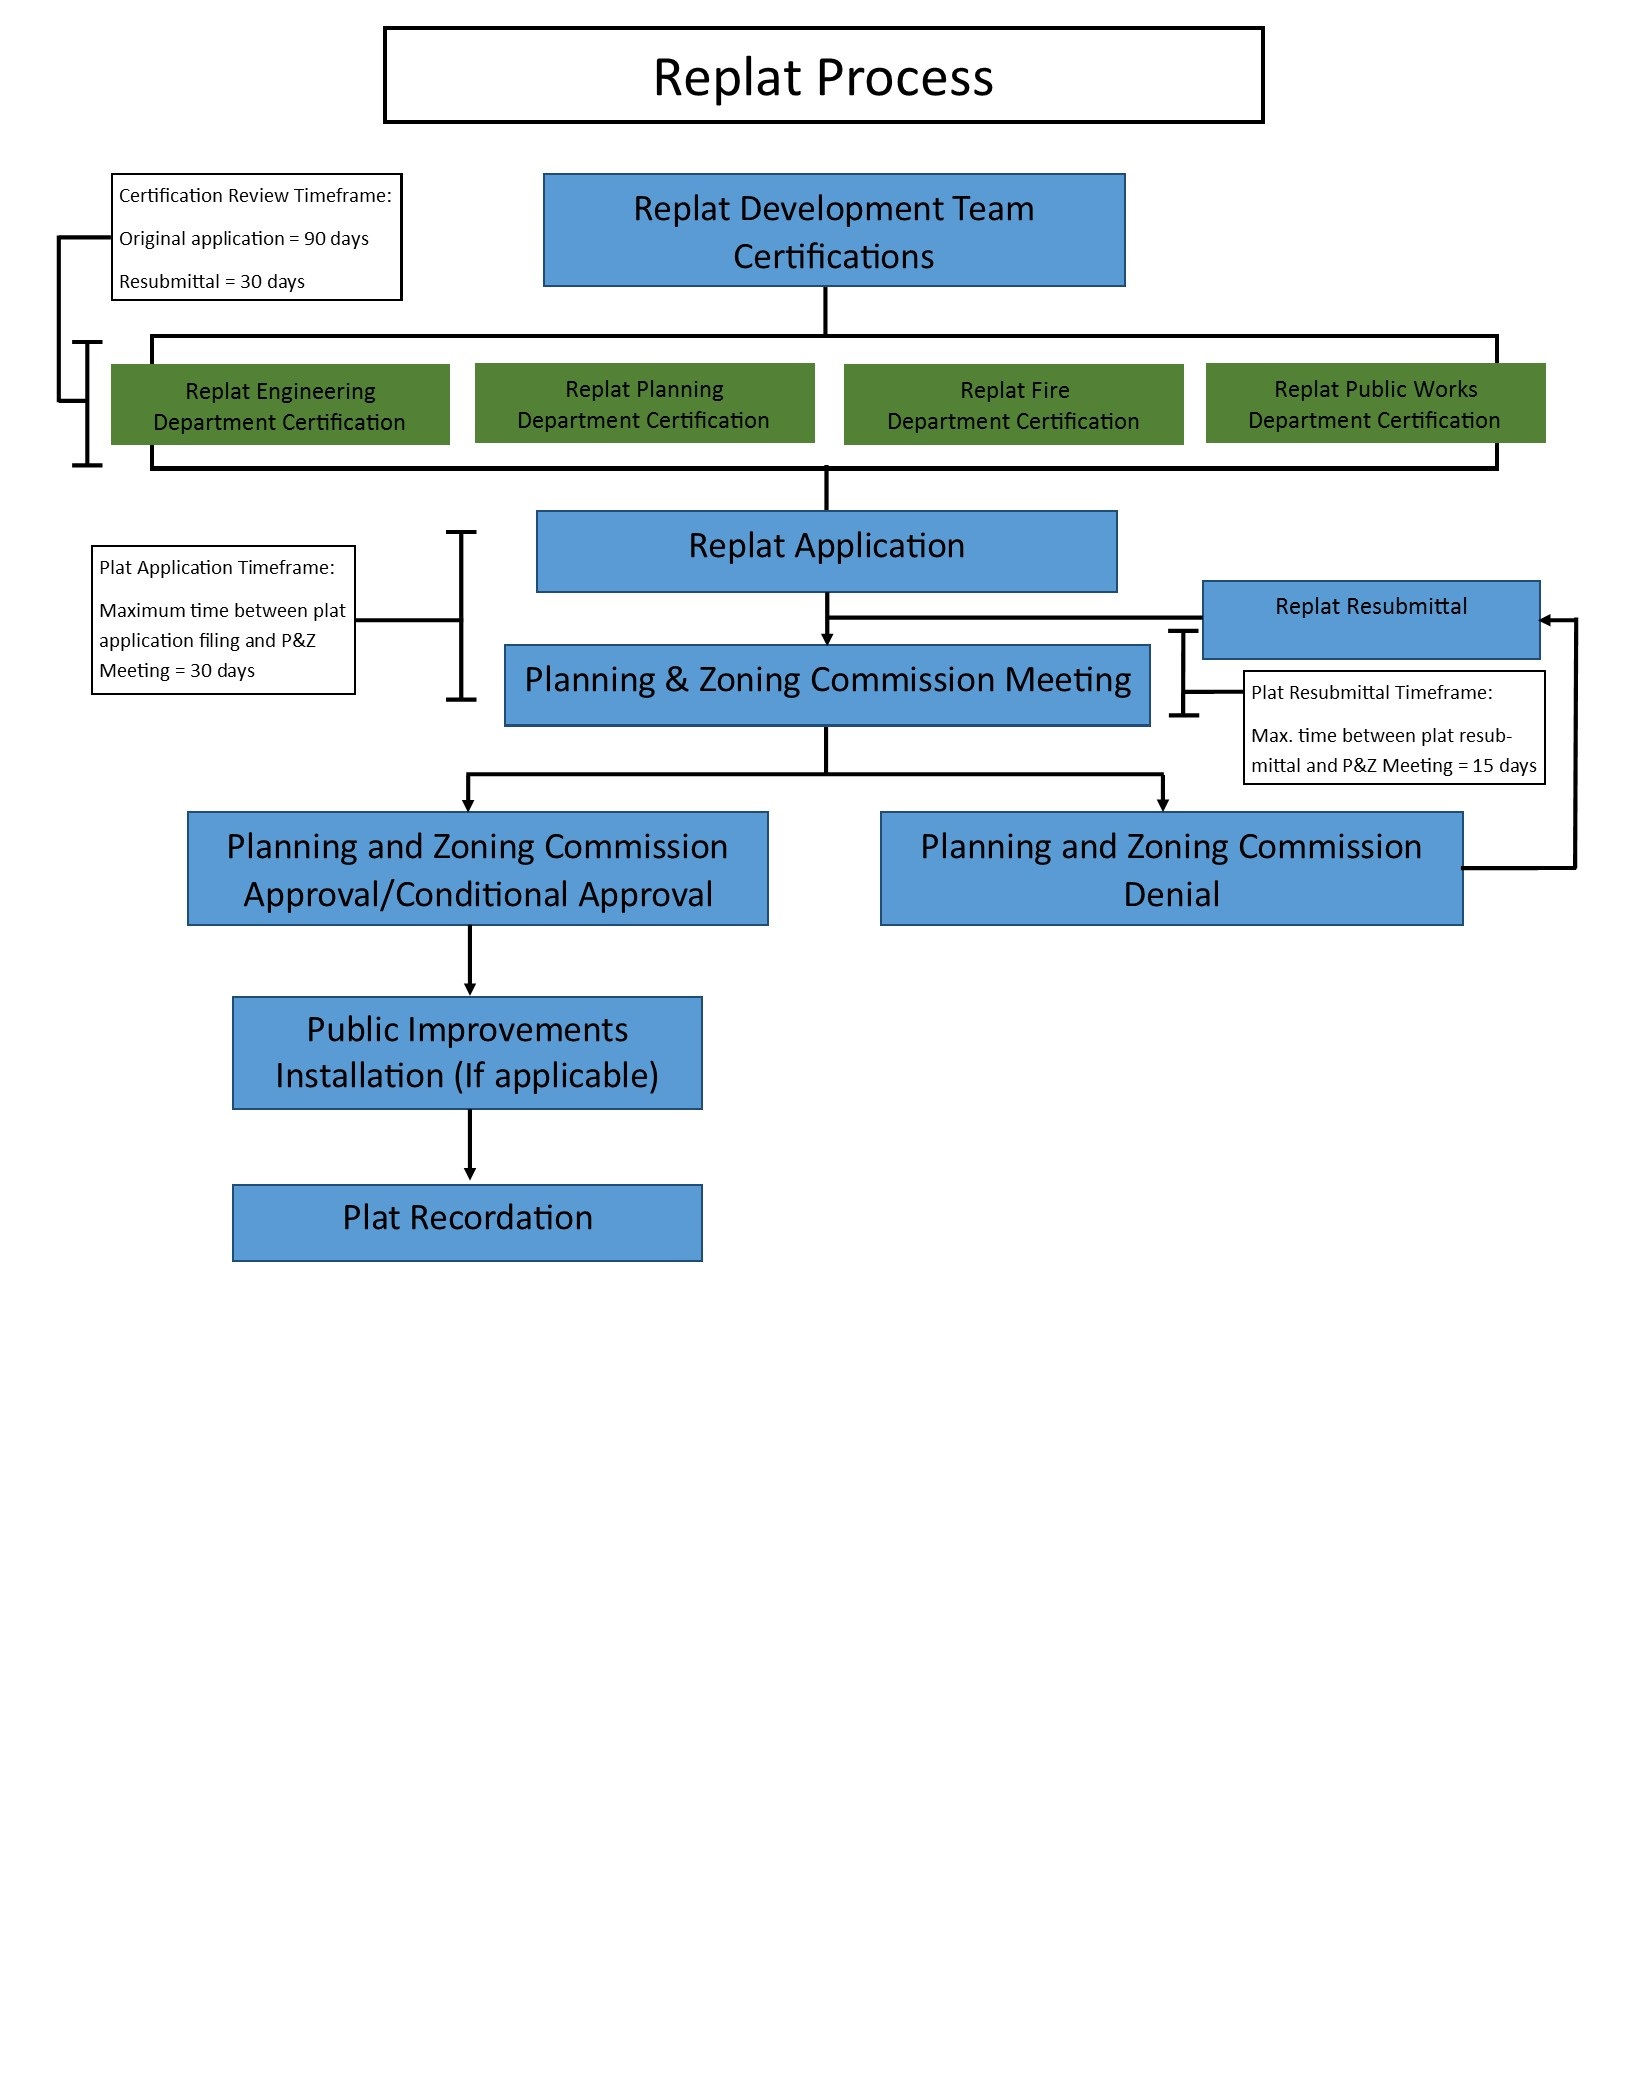 Replat Process Flow Chart